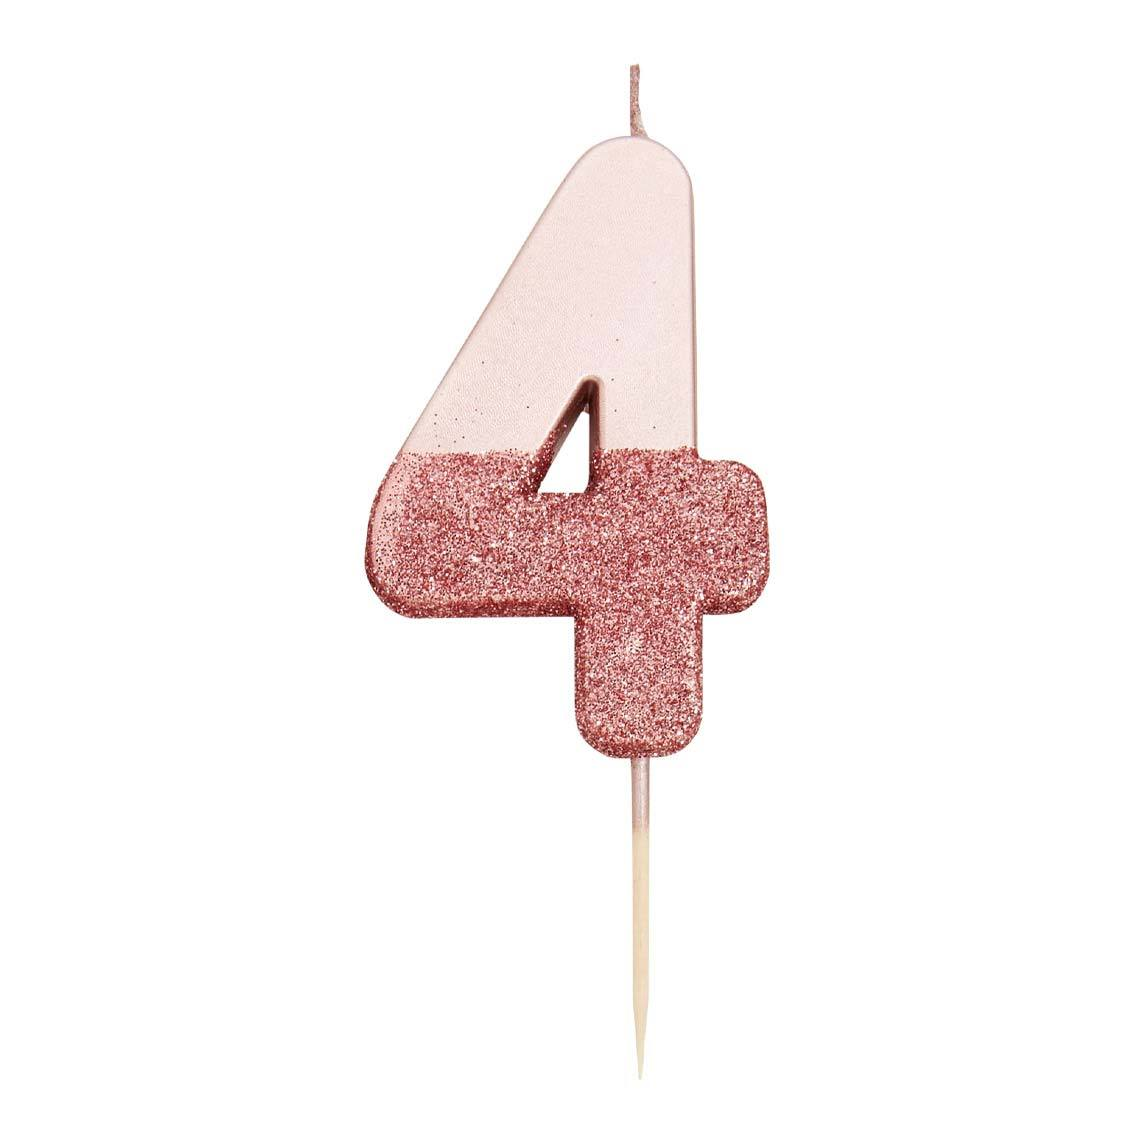 Rose Gold Glitter Dipped Number 4 Candles at A Little Confetti